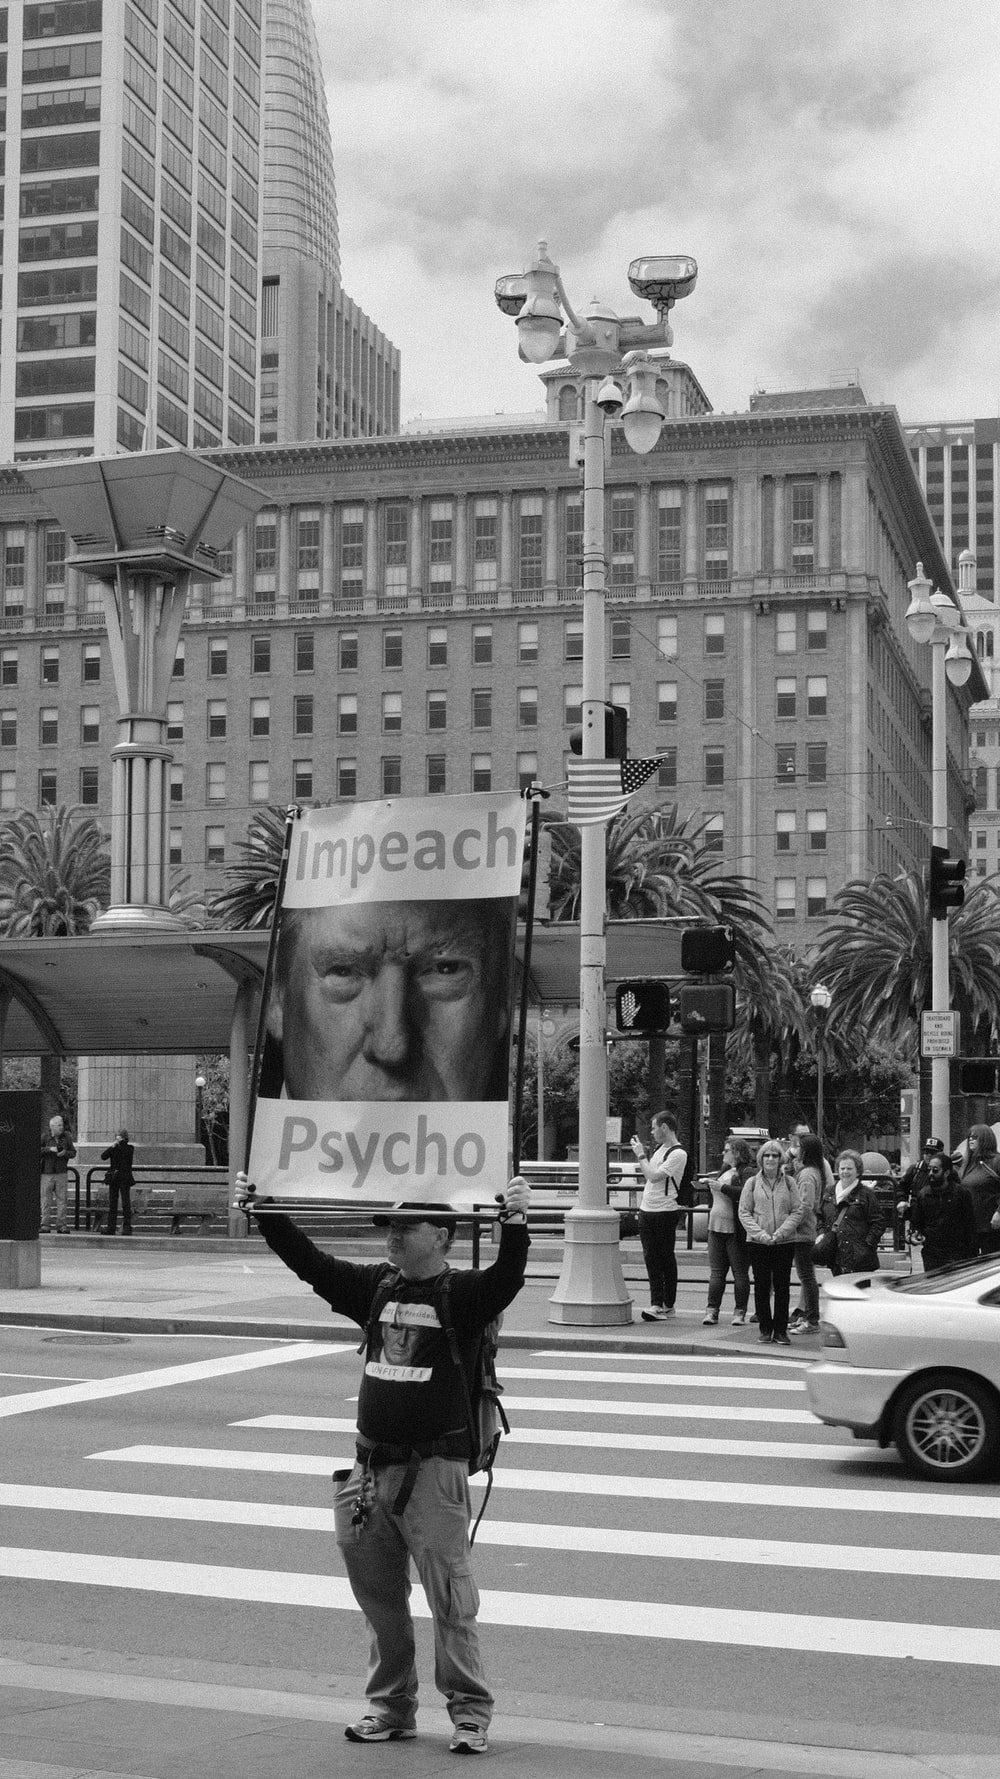 greyscale photography of man standing on road holding psycho banner